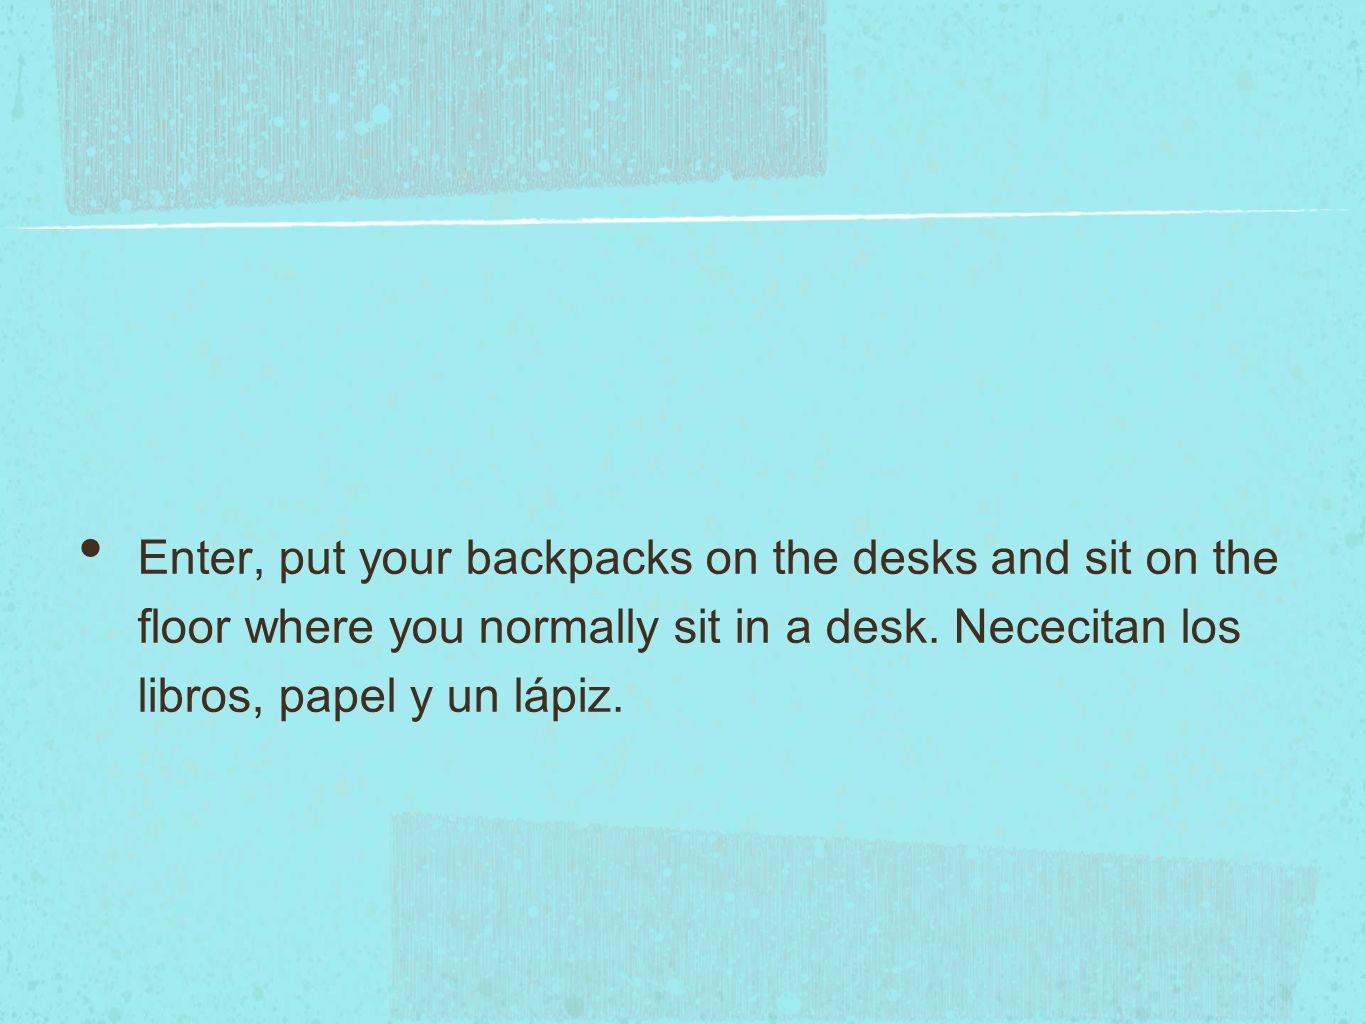 Enter, put your backpacks on the desks and sit on the floor where you normally sit in a desk.